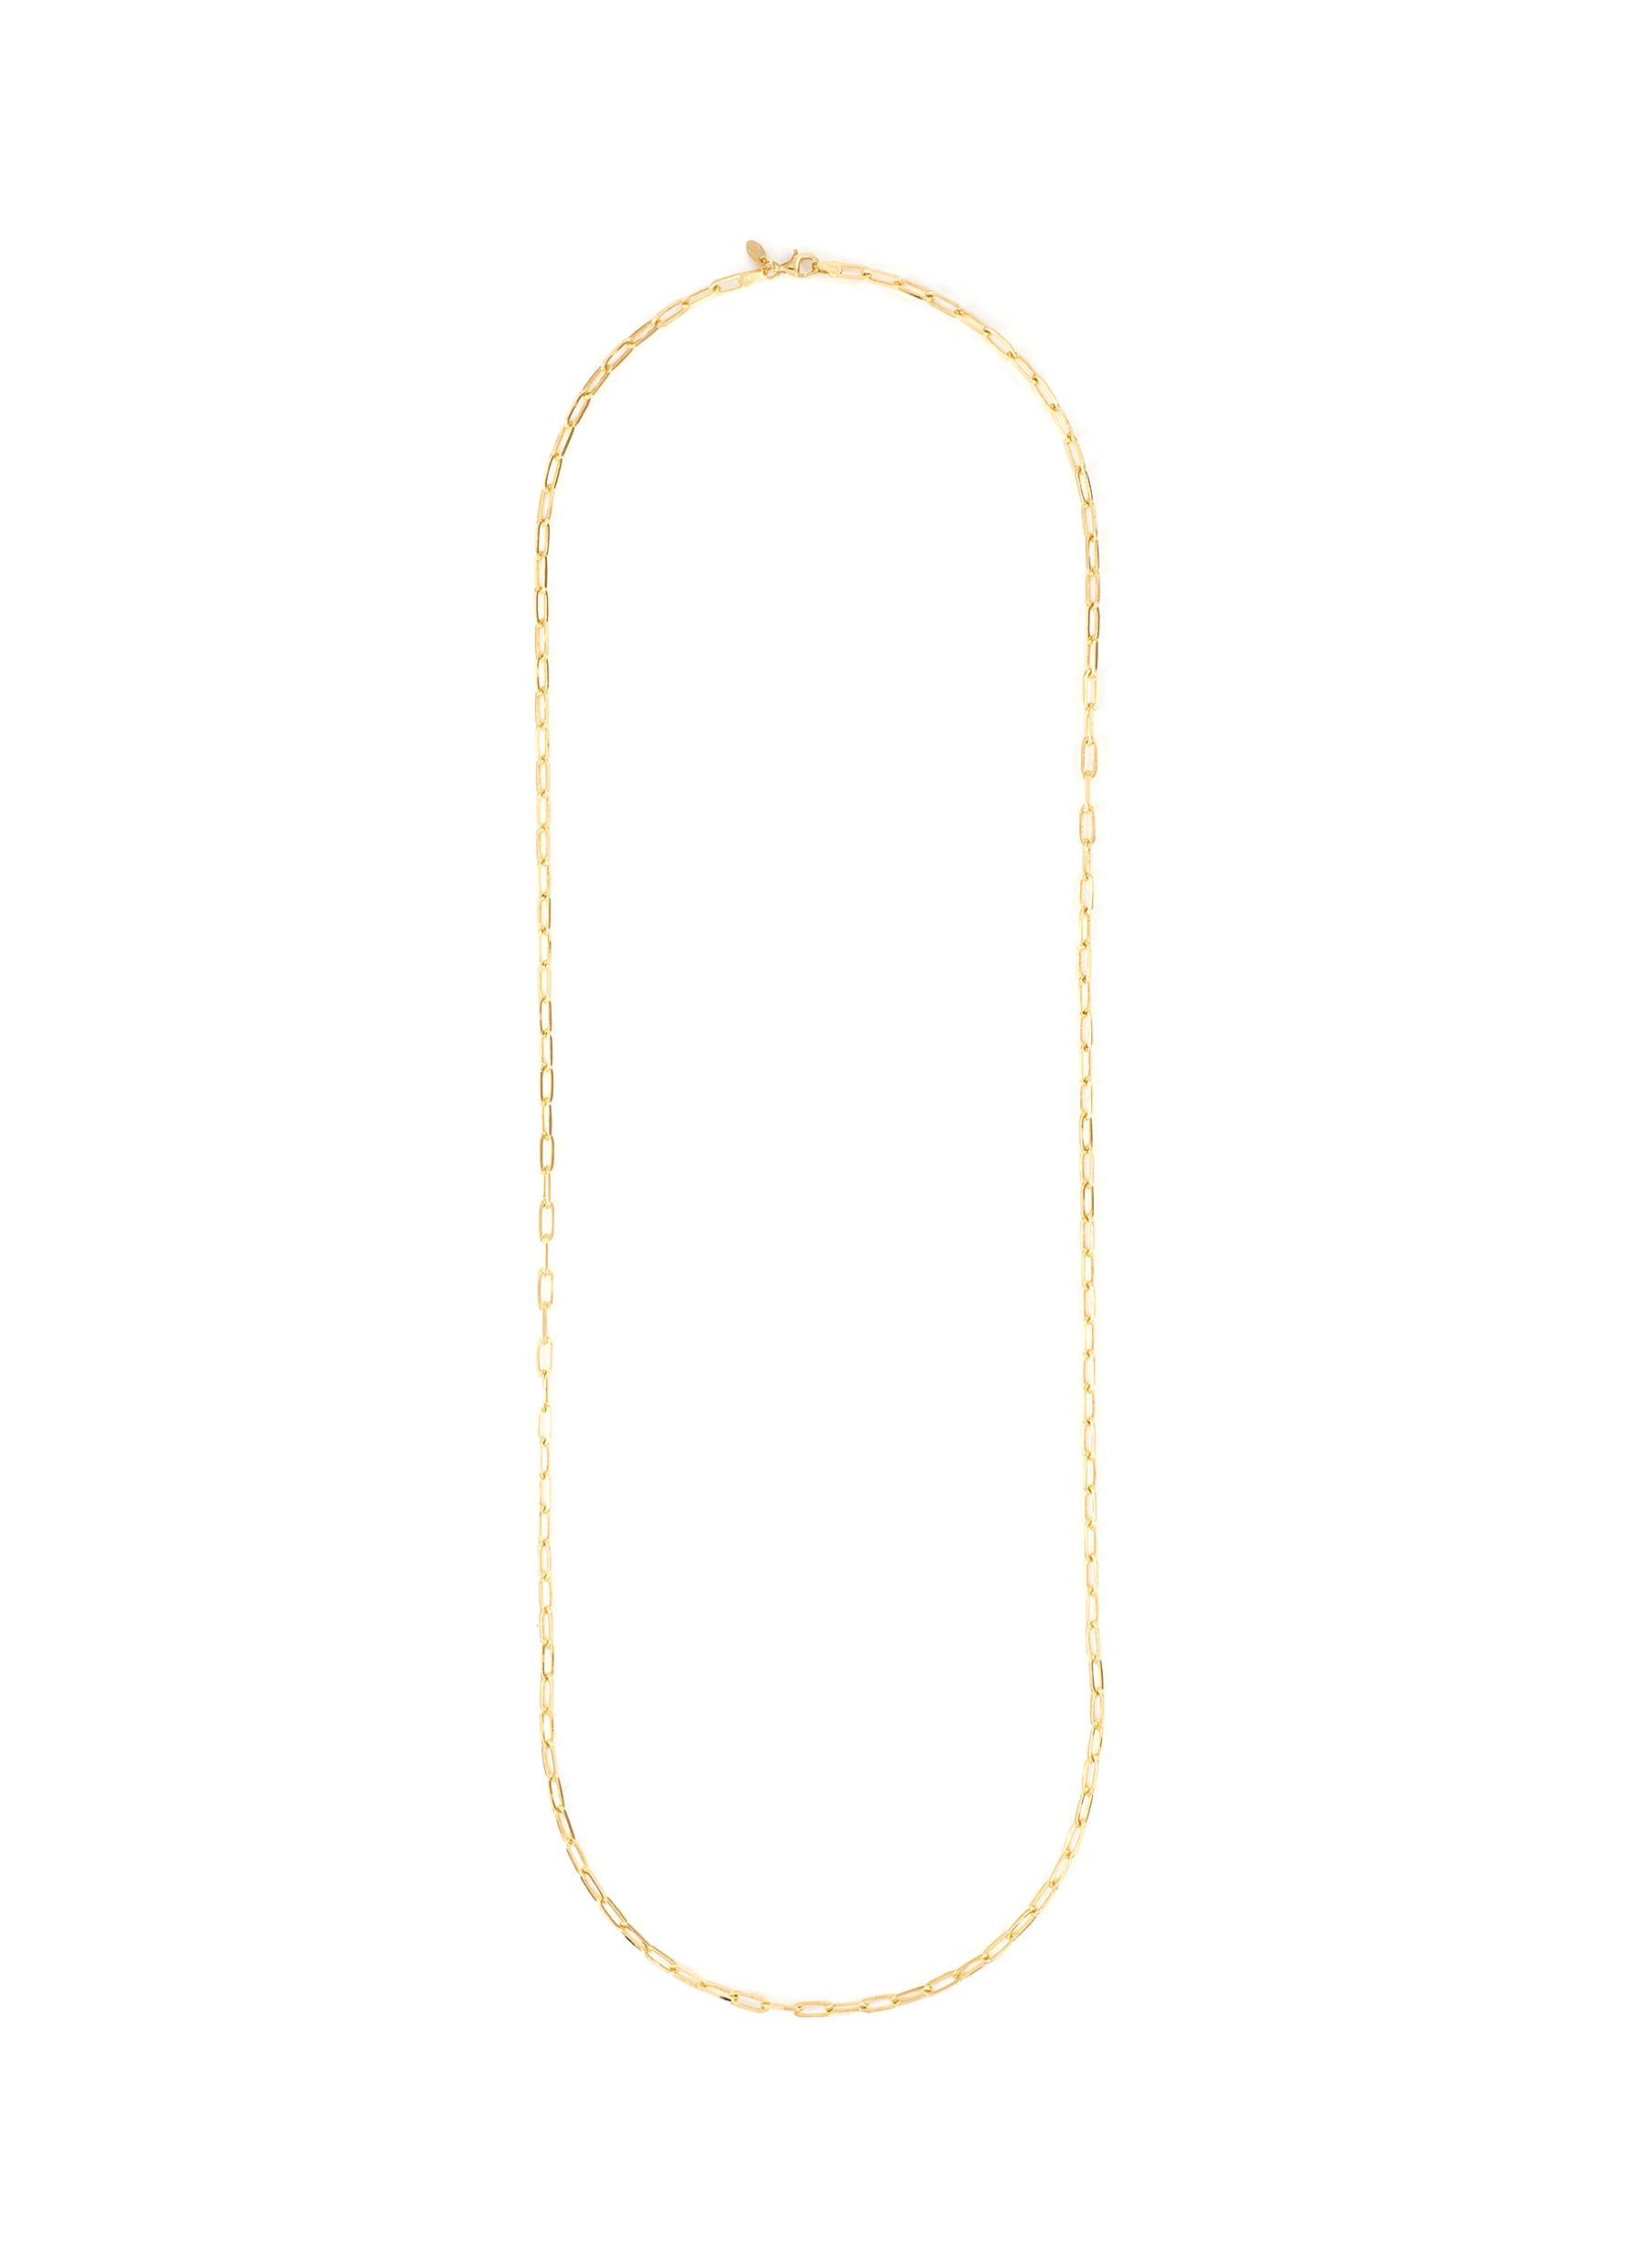 14k Gold Link Chain Necklace